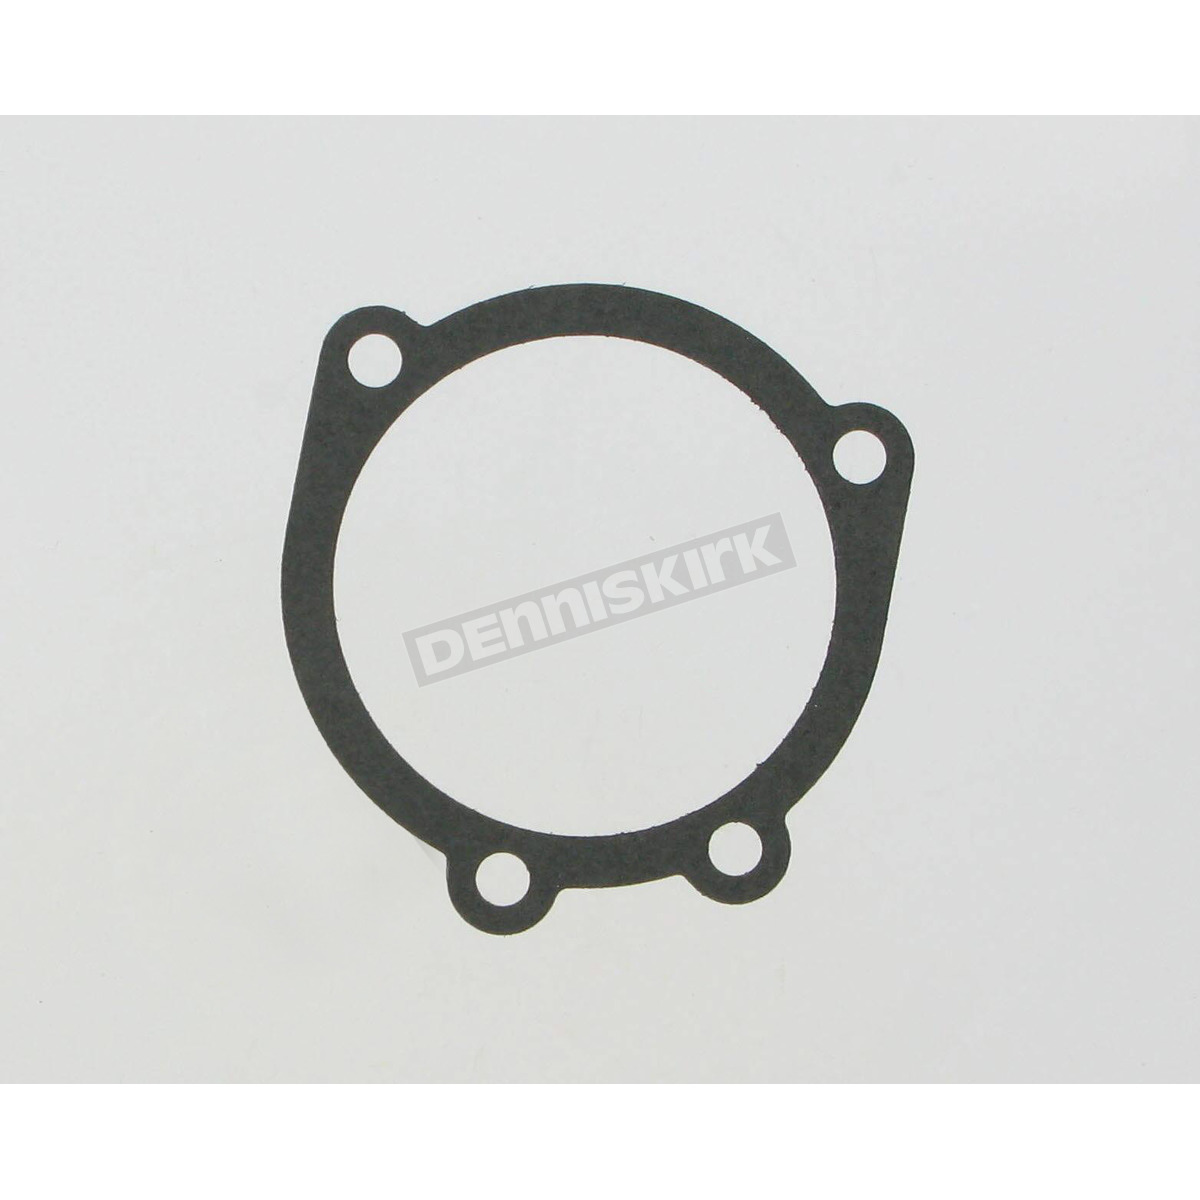 # 27002-89 Orange Cycle Parts Carb Carburetor Manifold Seal Set for Harley Twin Cam 1999-2006//80 EVO 1990-1999 and XL Sportster 1988-2006 repl